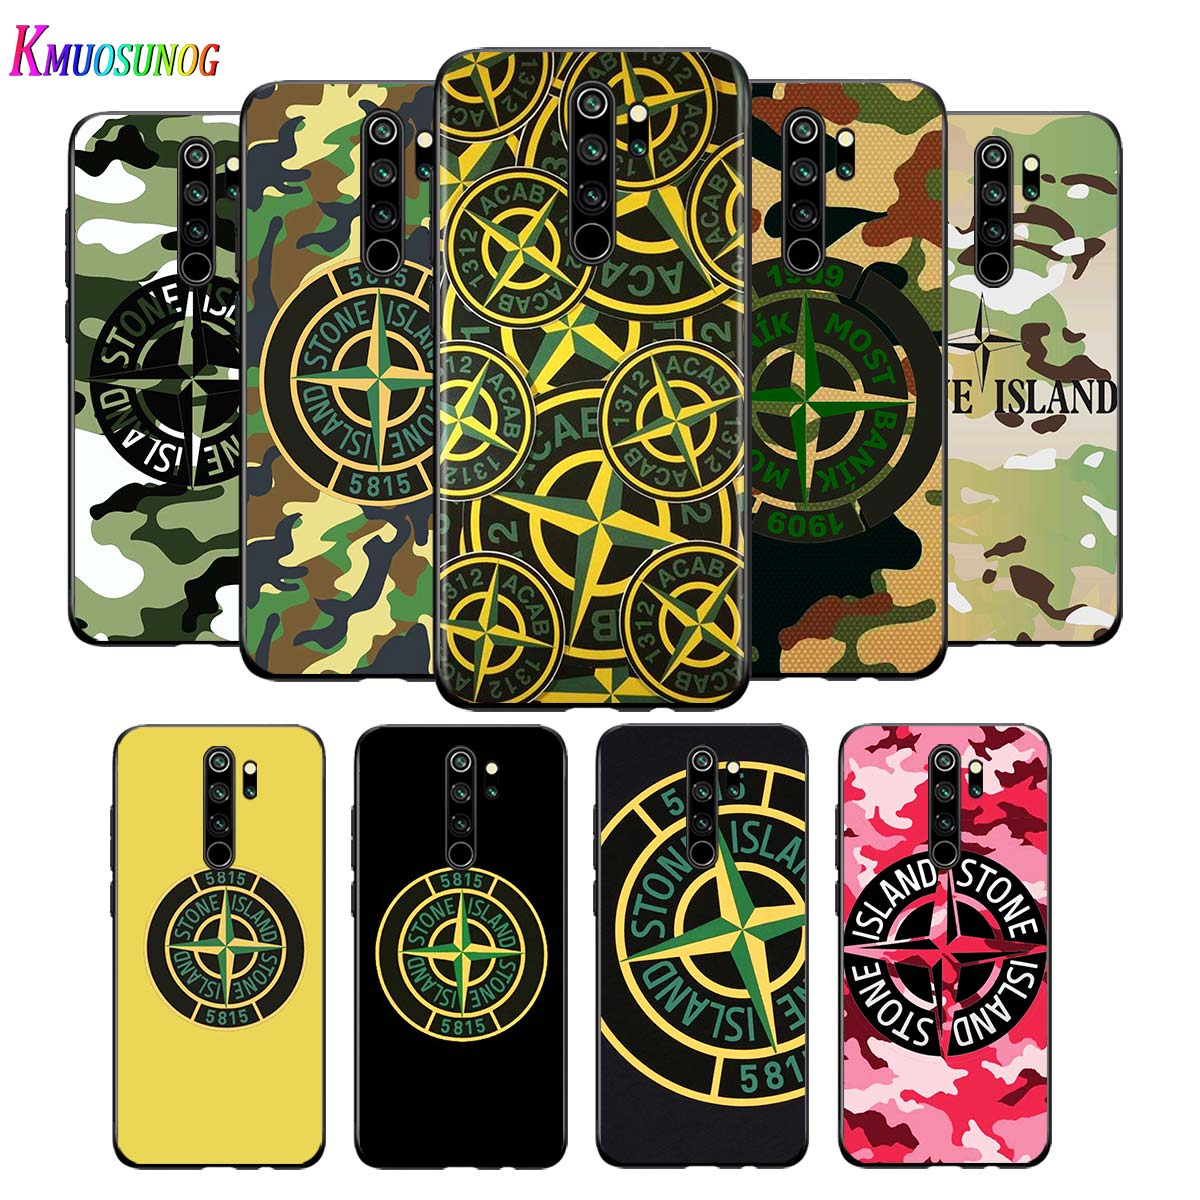 For Xiaomi <font><b>Redmi</b></font> <font><b>Note</b></font> 9 9S Max Phone <font><b>Case</b></font> Stone and Island <font><b>Logo</b></font> Back For Xiaomi 8T 8 <font><b>7</b></font> 6 5 Pro 5A 4X 4 Black Phone Cover image